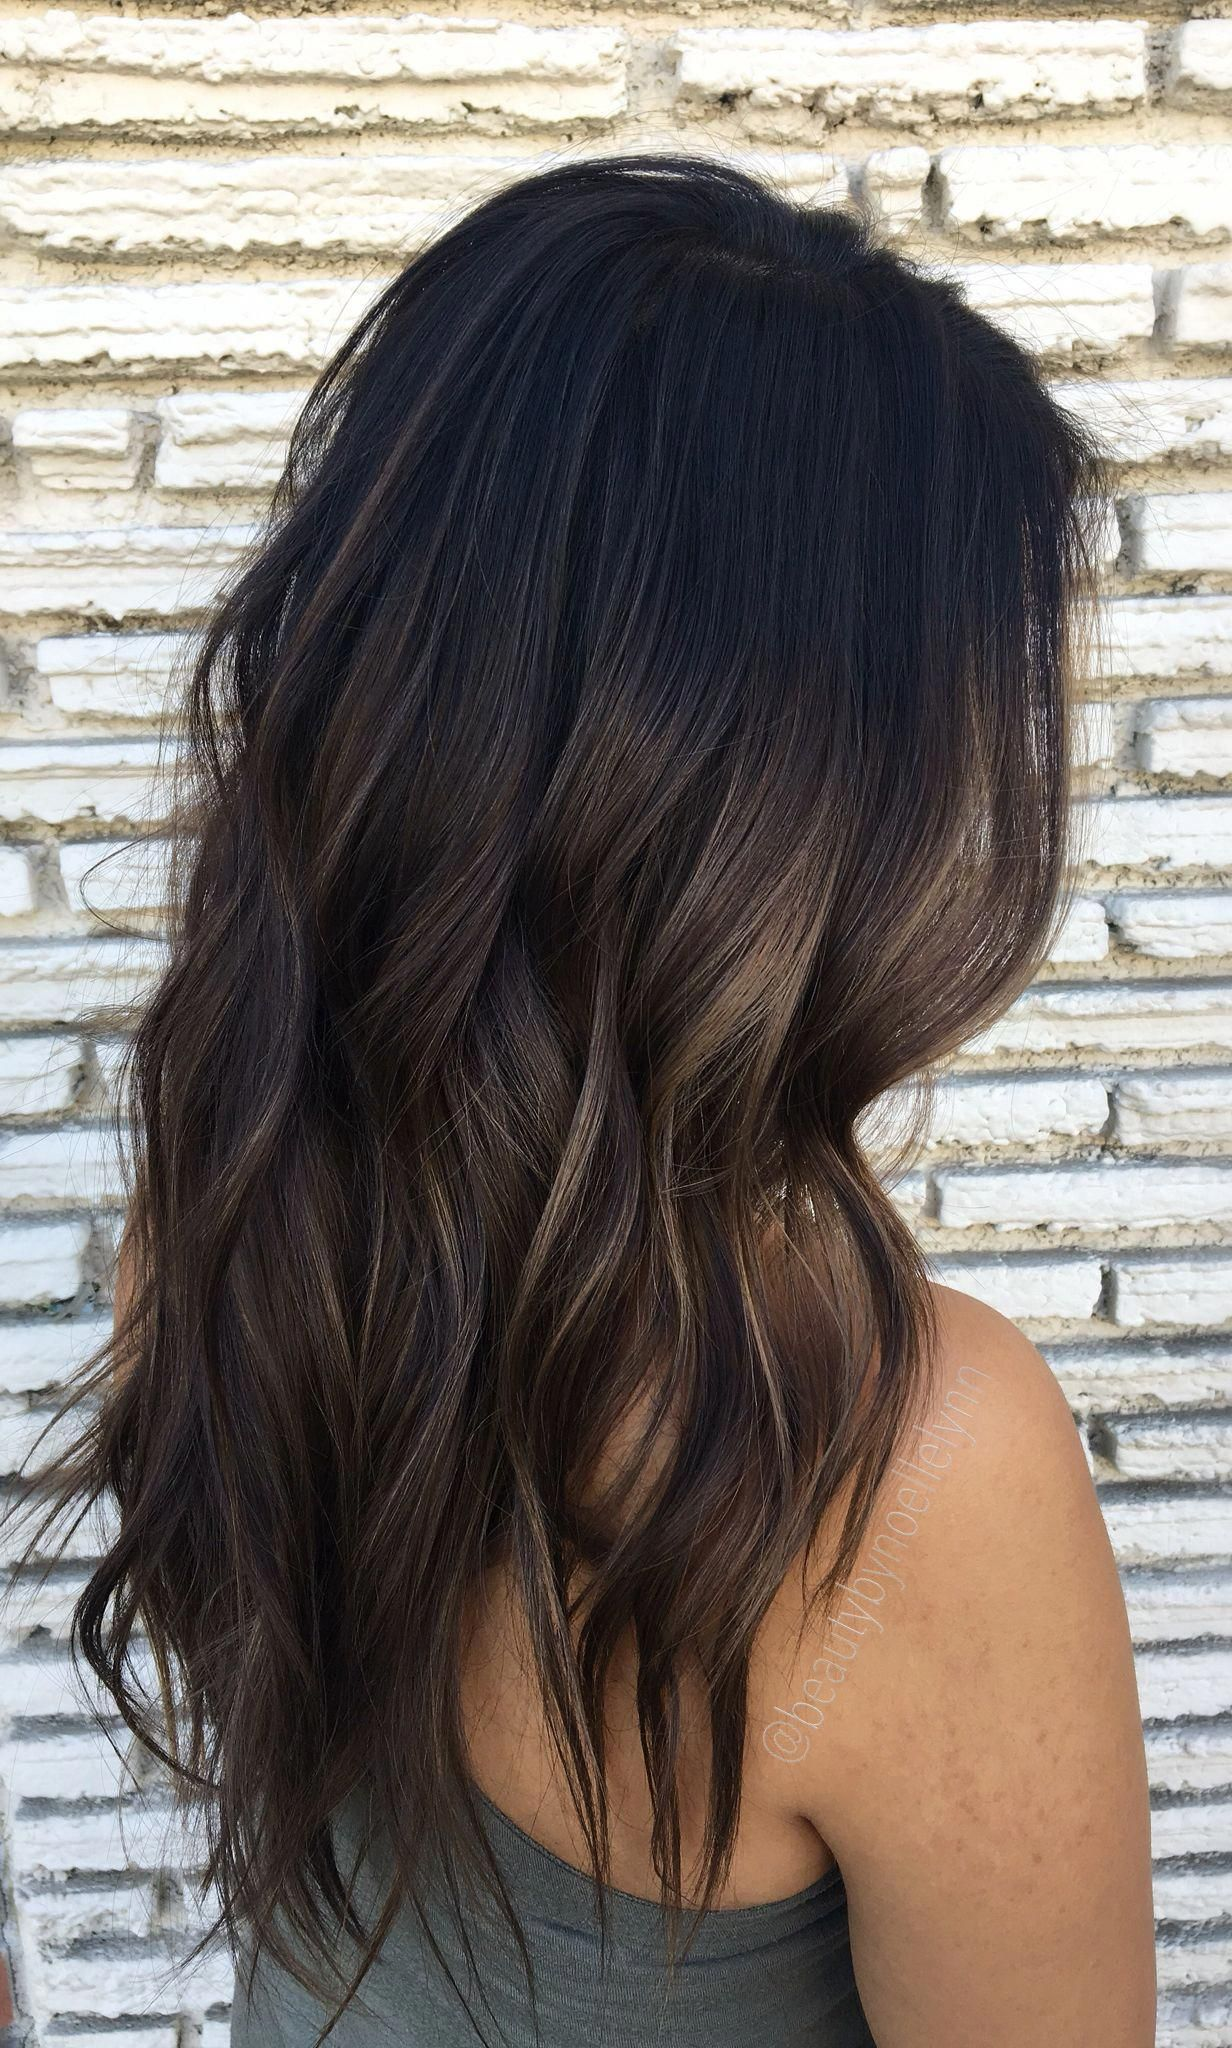 New Hair Online Termin Gorgeous Balayage Highlights On Dark Hair